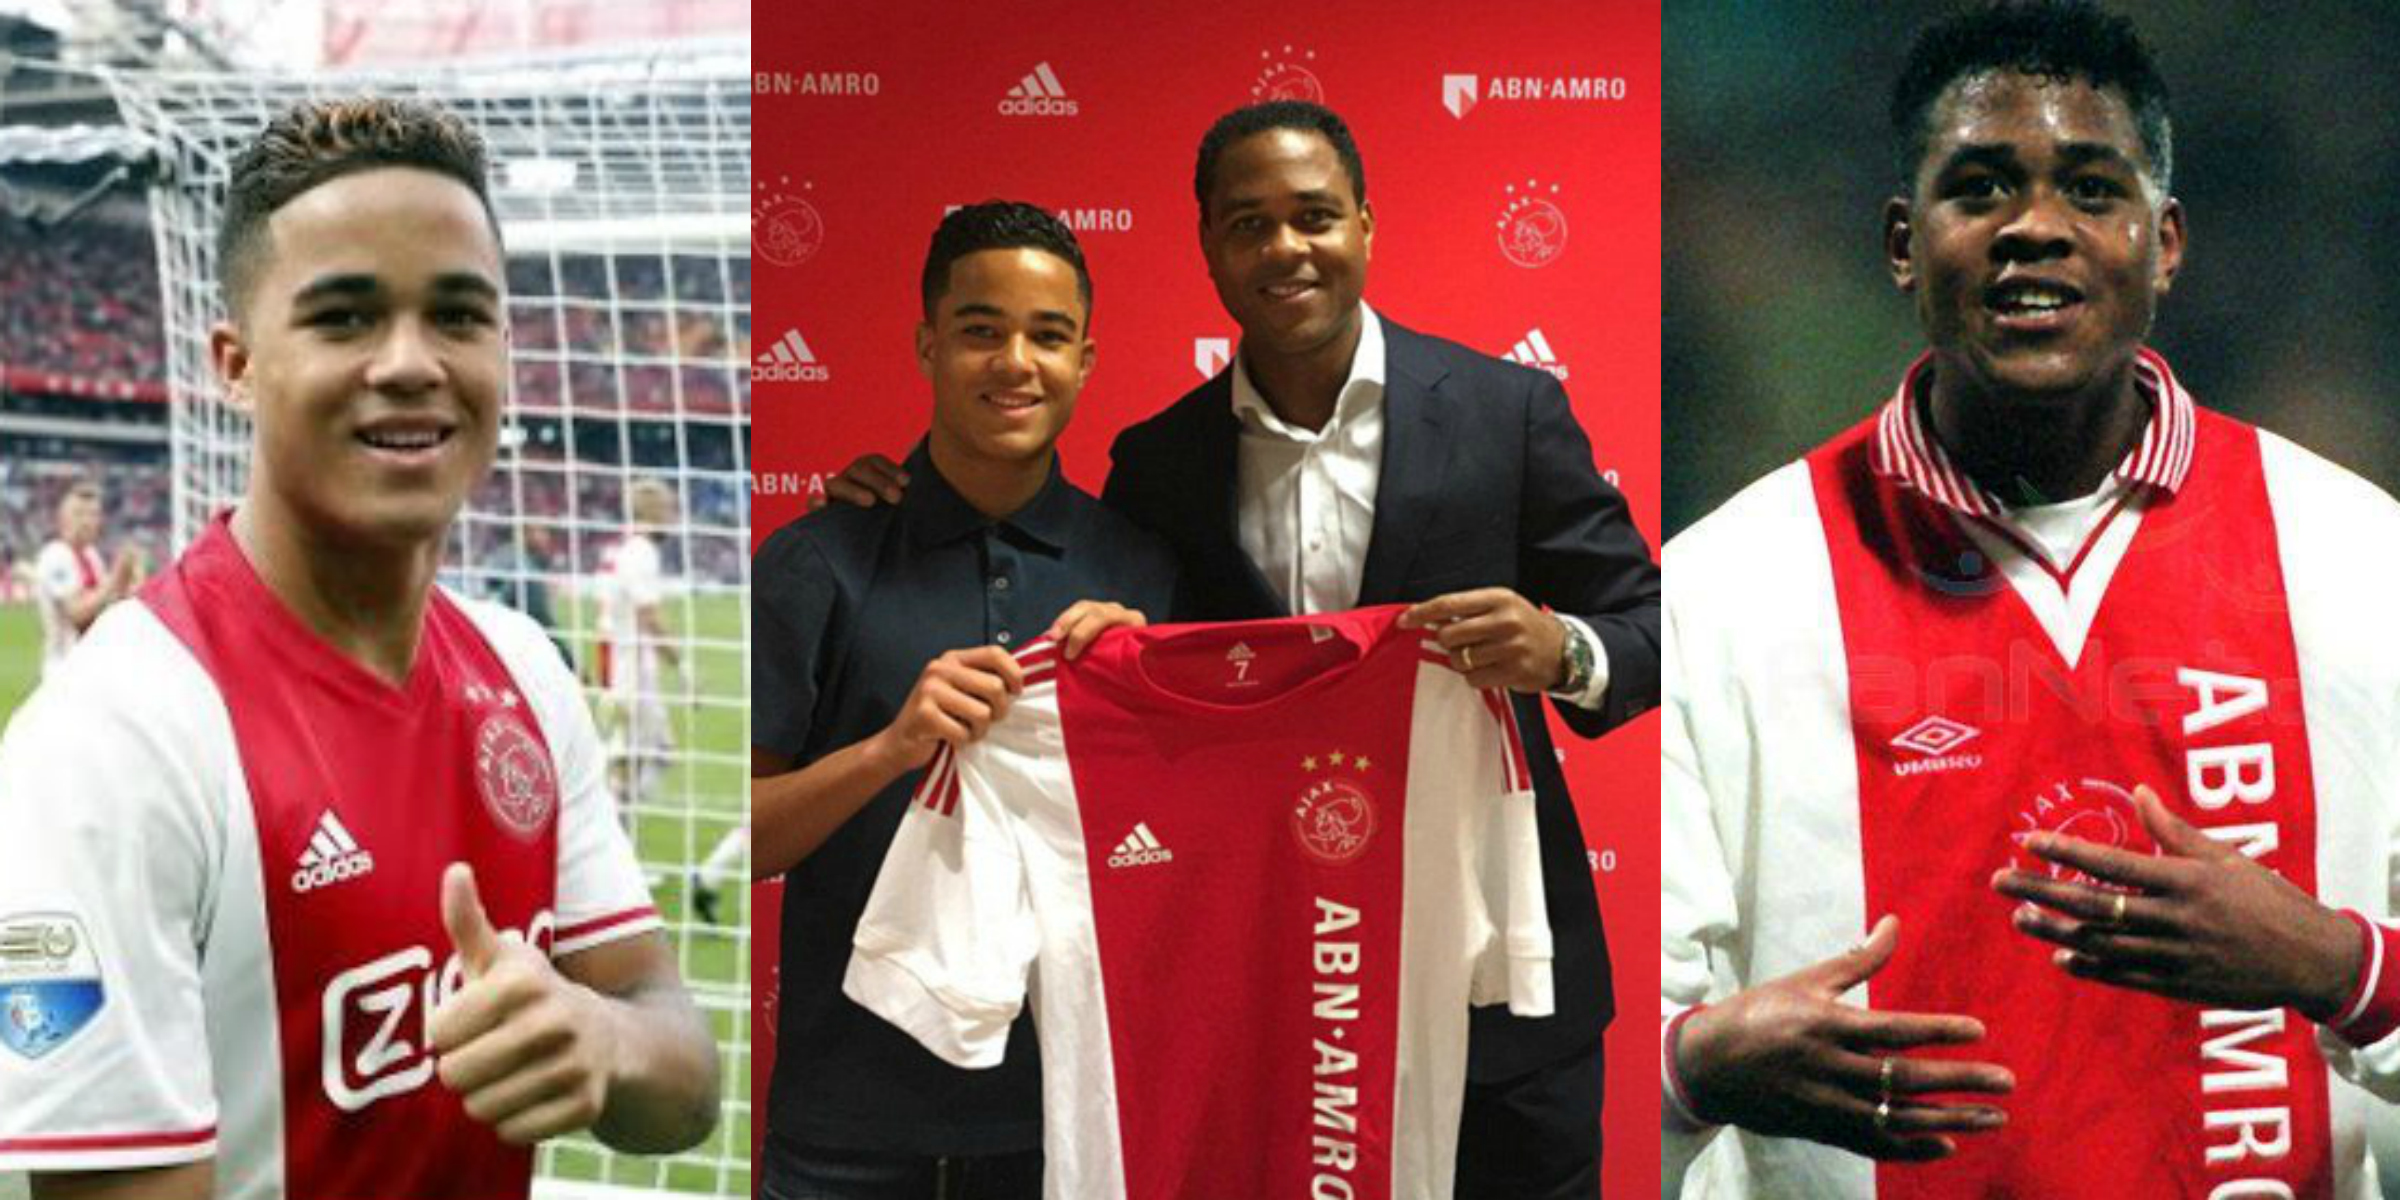 Patrick Kluivert and Justin Kluivert